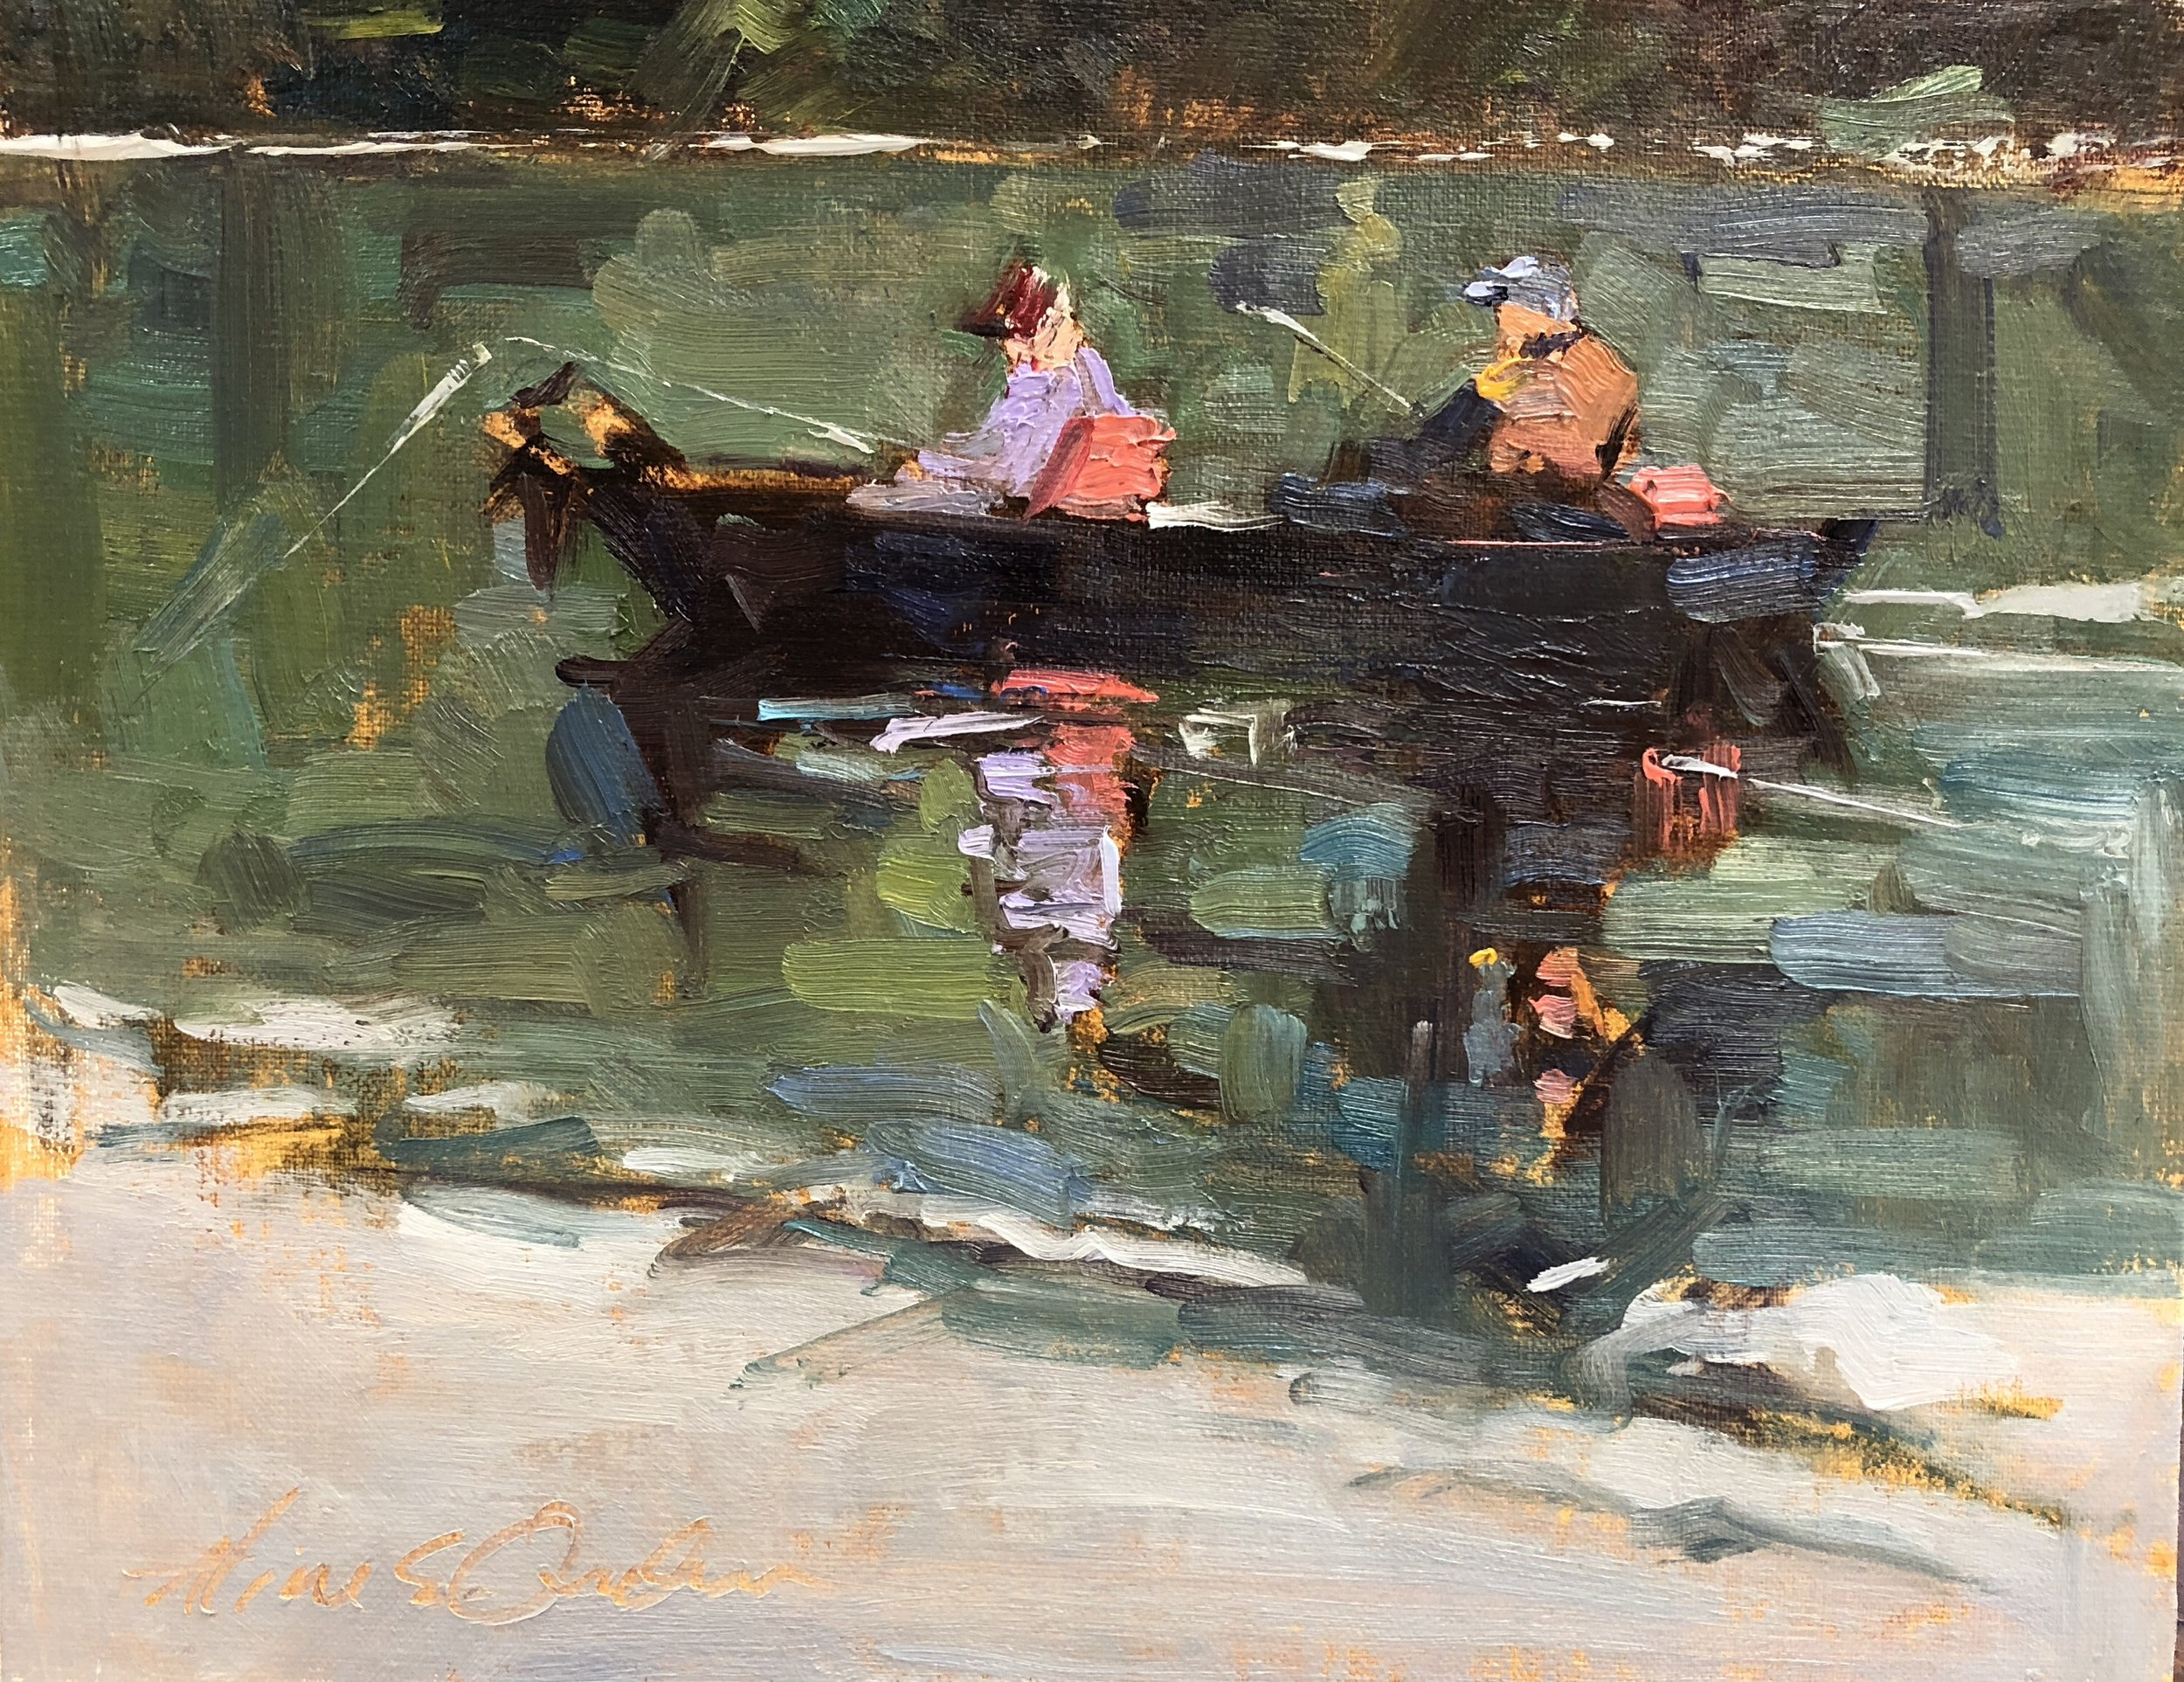 Peacham Fishing  8 x 10 oil on board